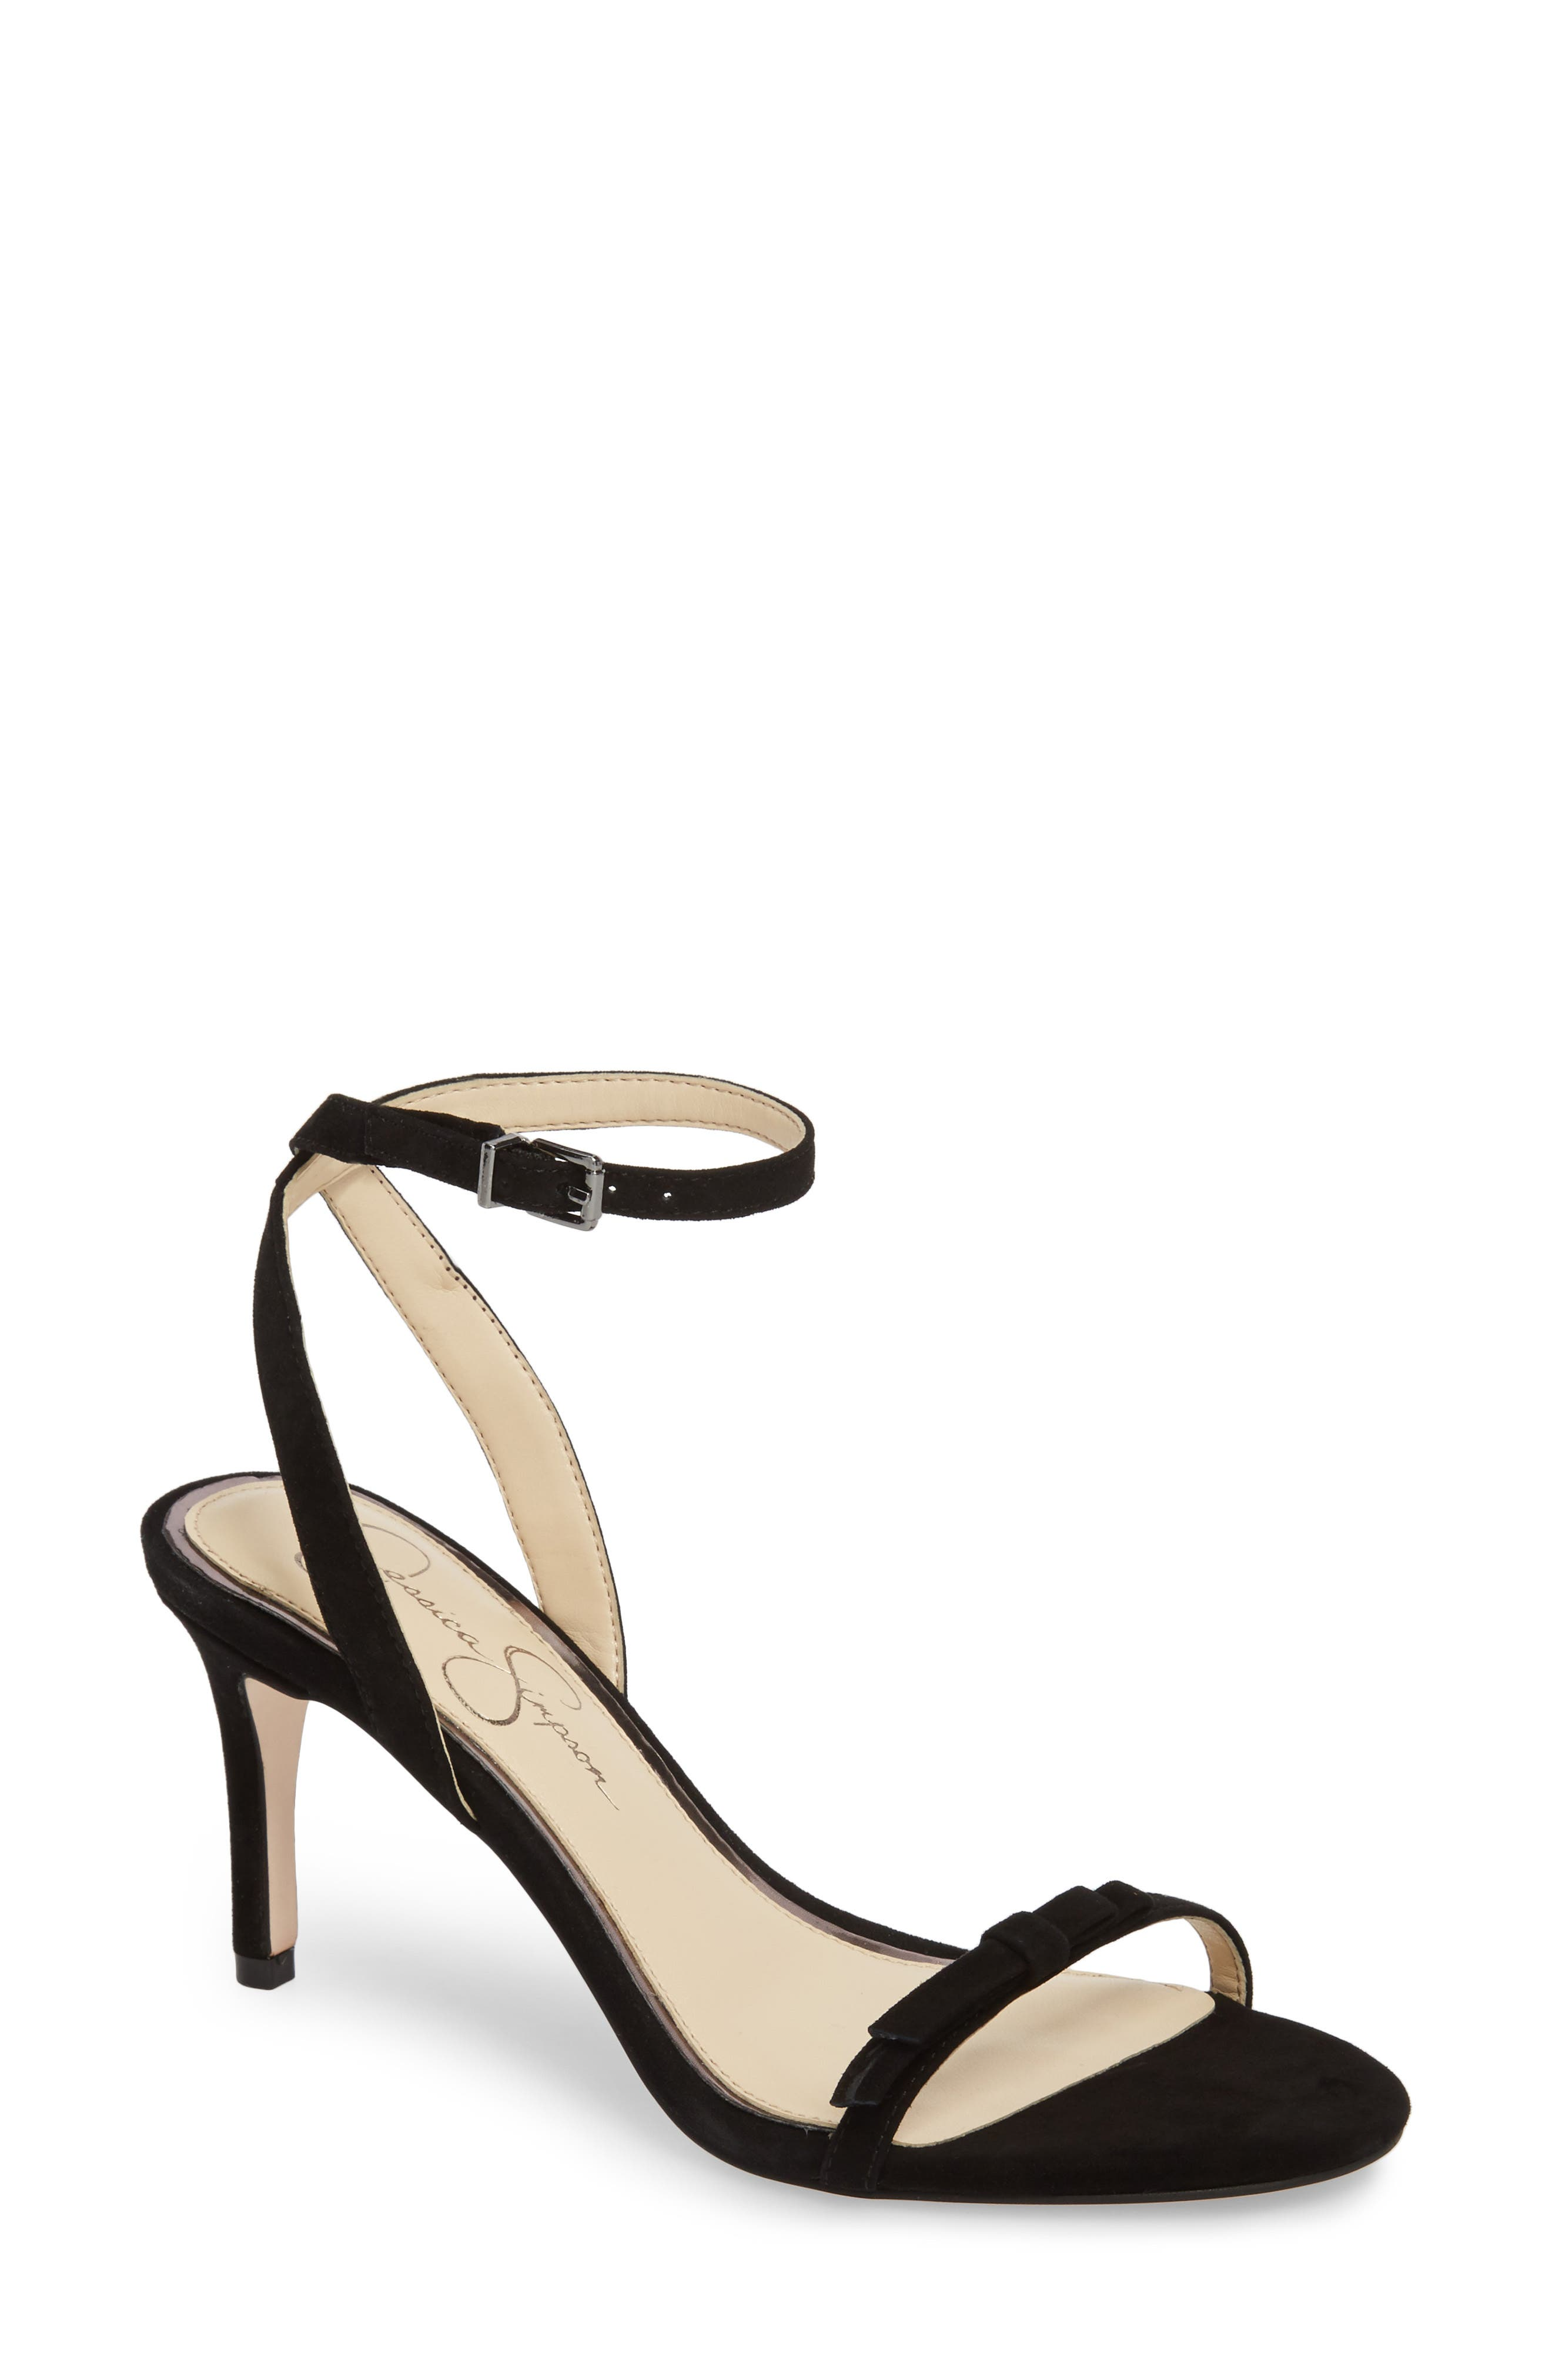 Purella Sandal,                         Main,                         color, BLACK